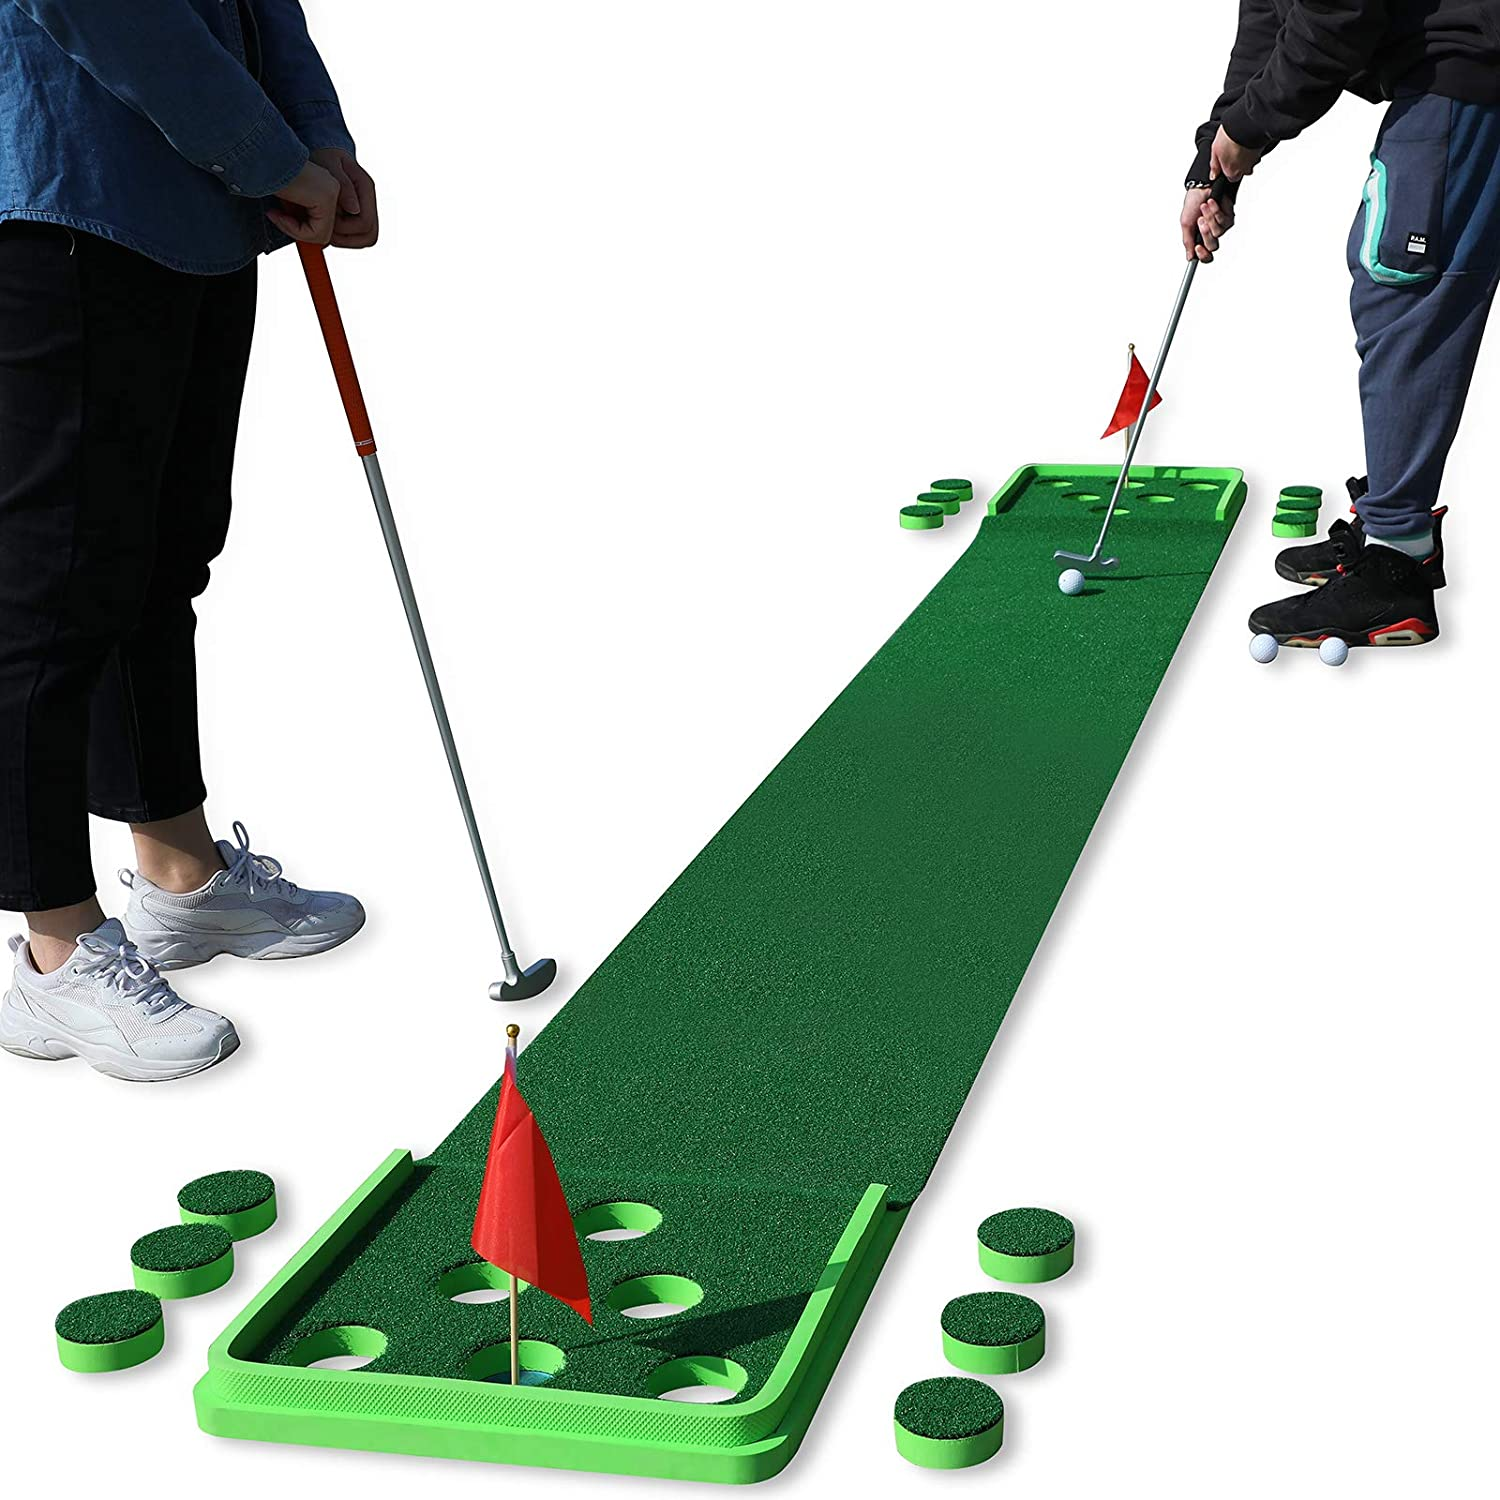 SPRAWL Golf Pong Game Set Putting Mat Indoor & Outdoor Golf Putting Green Golf Putt Practice Training Aid Gift for Home, Office, Backyard